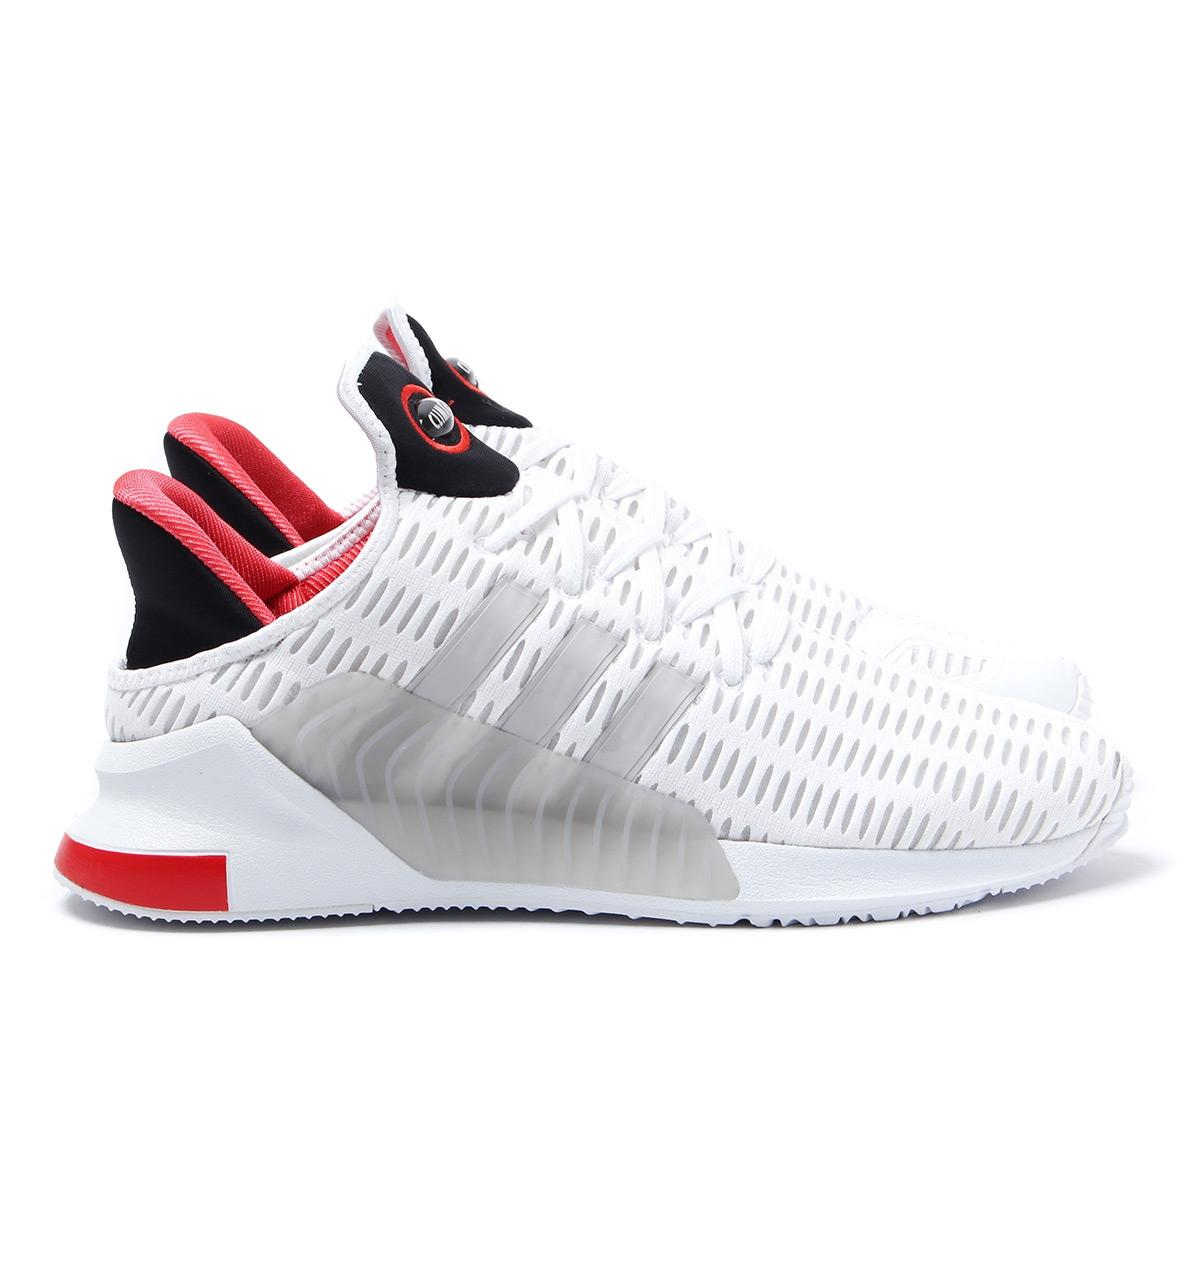 100% authentic a08cc b59bf Lyst - adidas Originals Adidas Pink  White Climacool 02.17 T